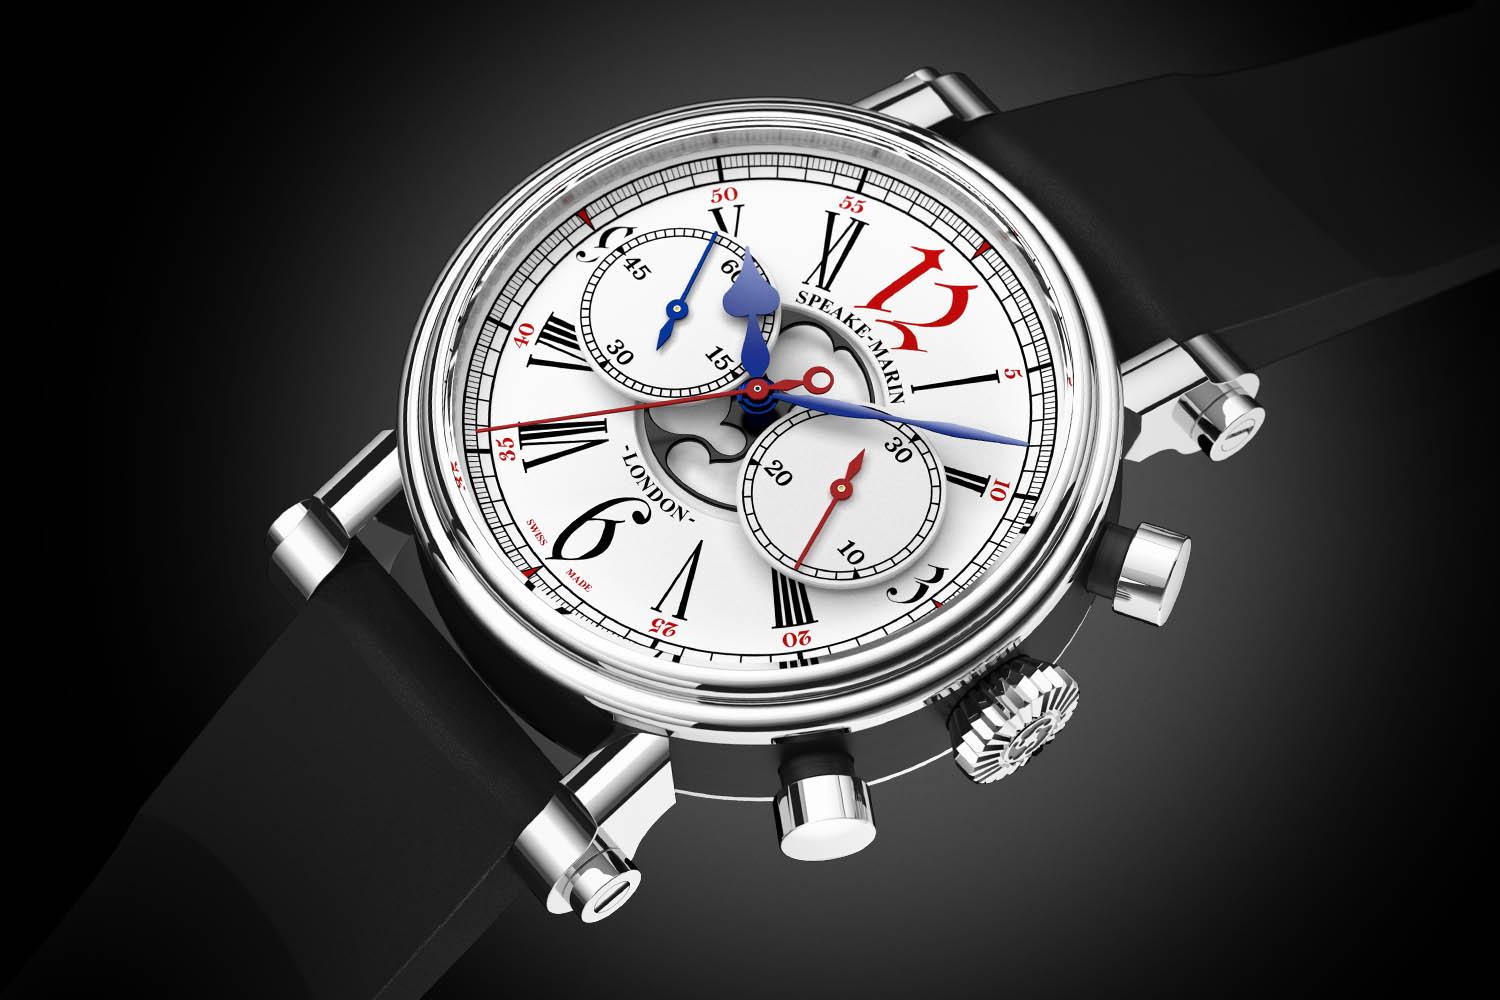 Introducing – Speake-Marin London Chronograph Special Edition for Harrods, with vintage Valjoux 92 movement (specs & price)